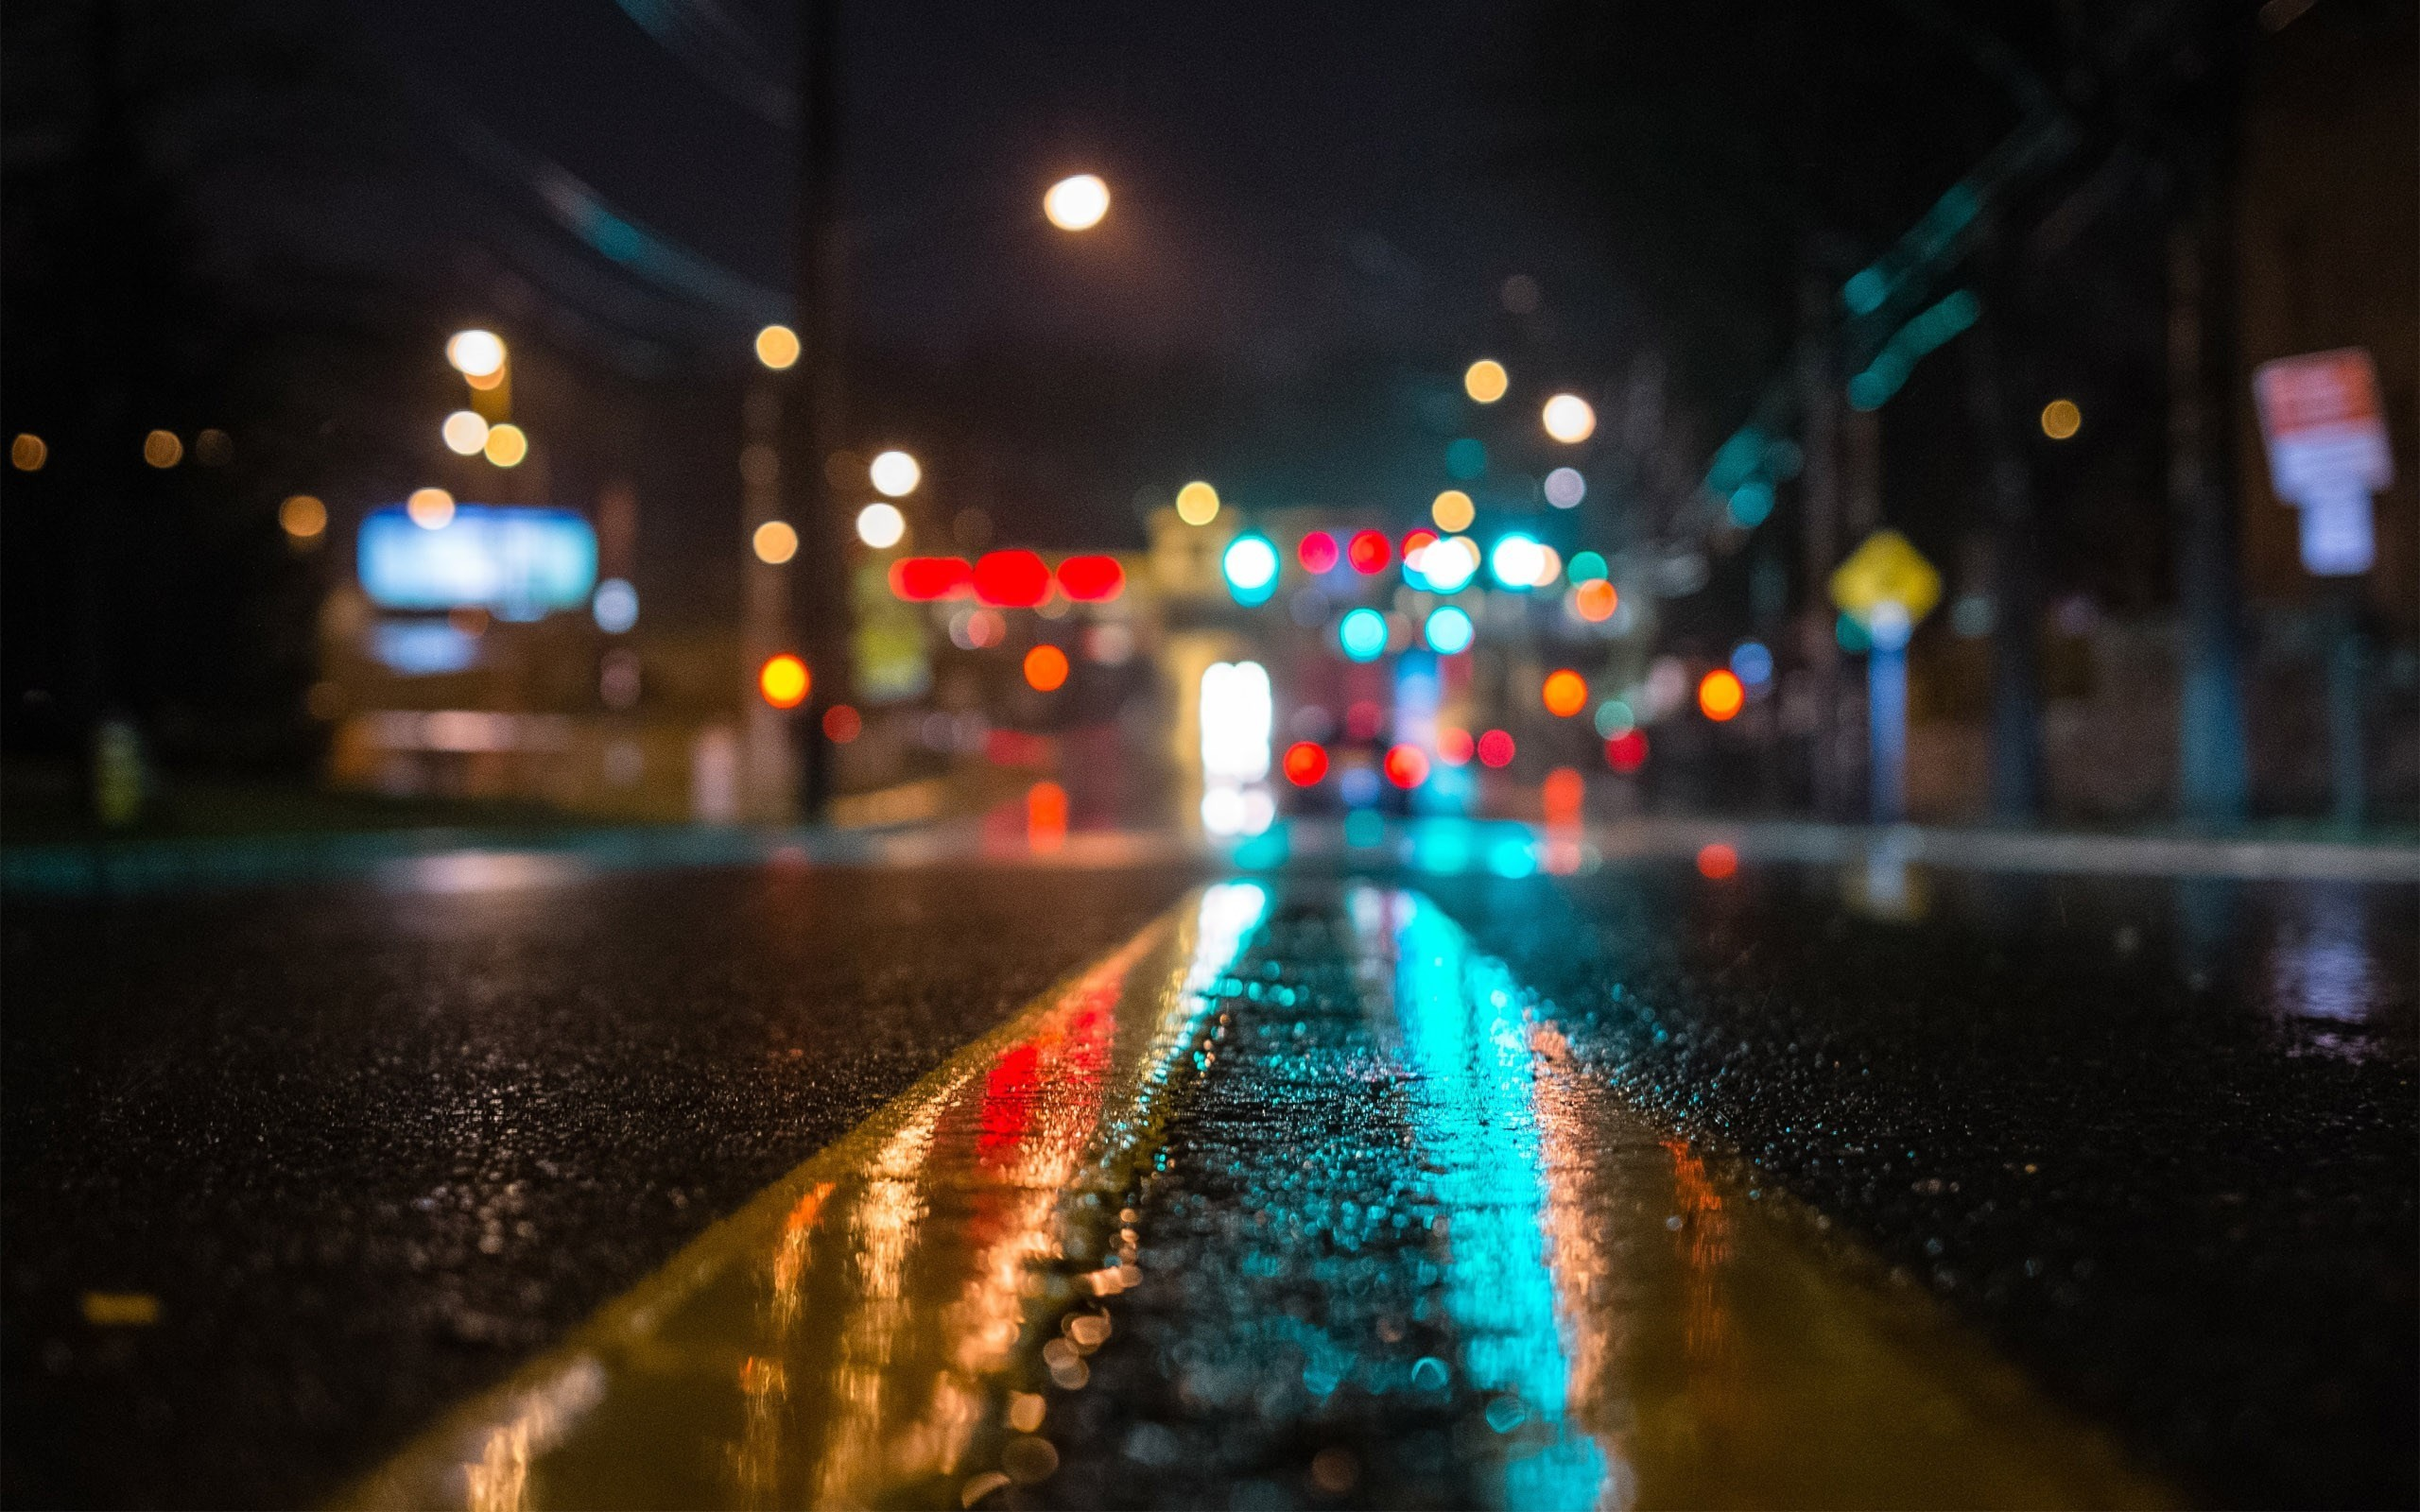 City Street At Night Wallpaper Desktop Background with High Definition  Wallpaper px 728.81 KB